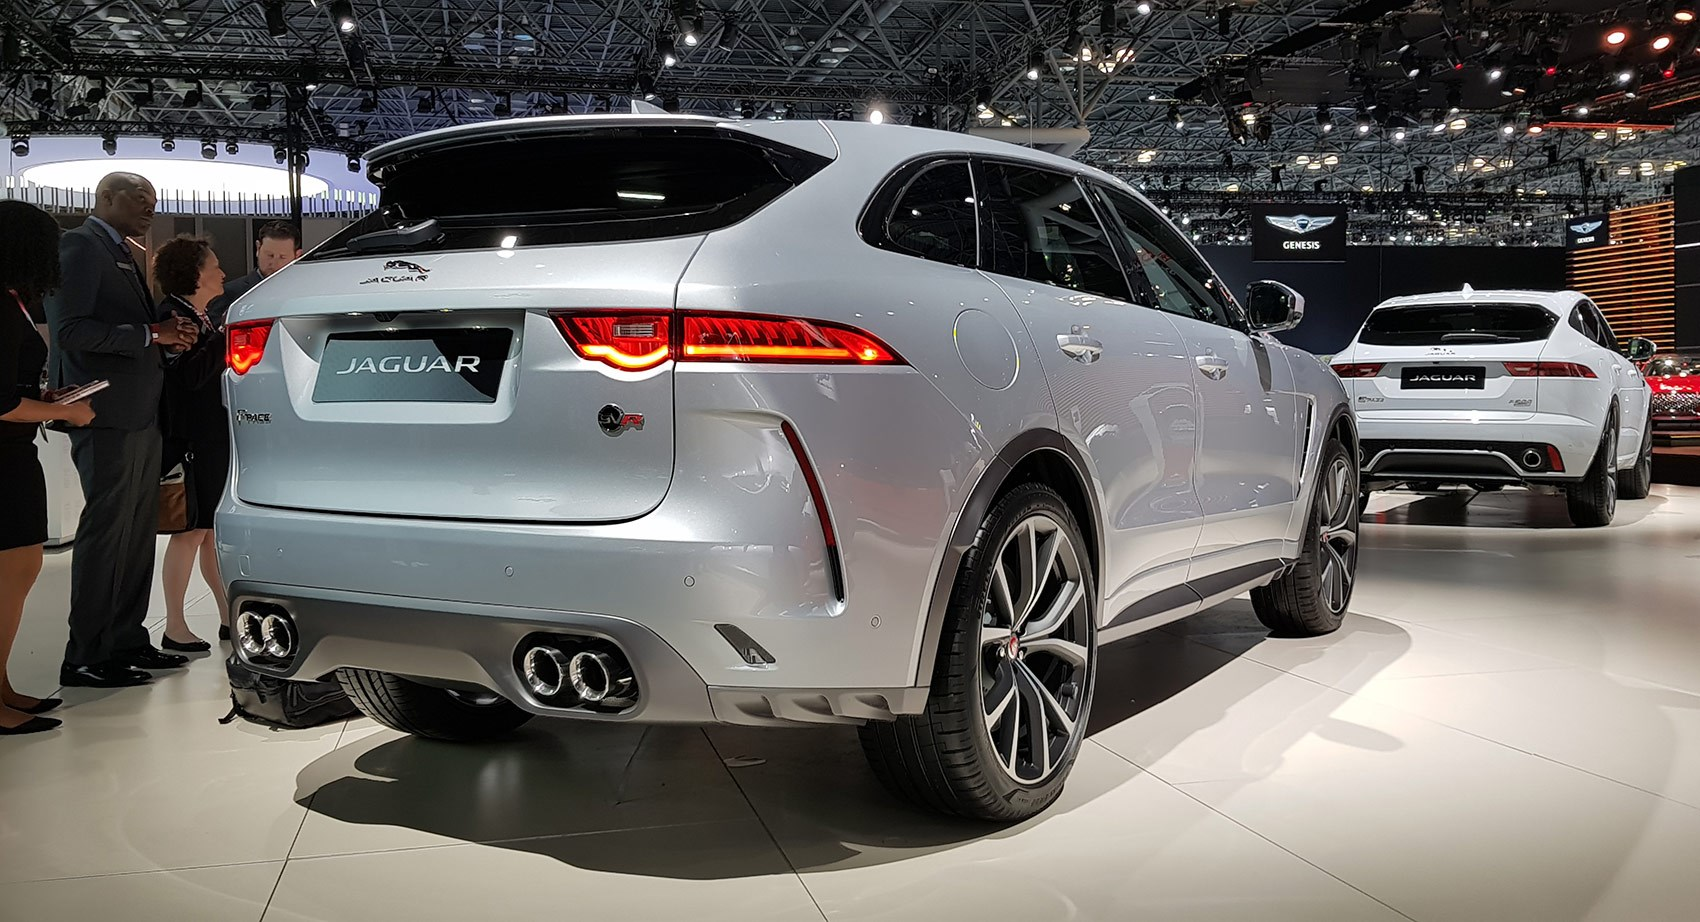 2019 Jaguar F-Pace SVR: News, Design, Engine, Price >> Suv Goes Svr New Jaguar F Pace Svr Is Here For 2018 Car